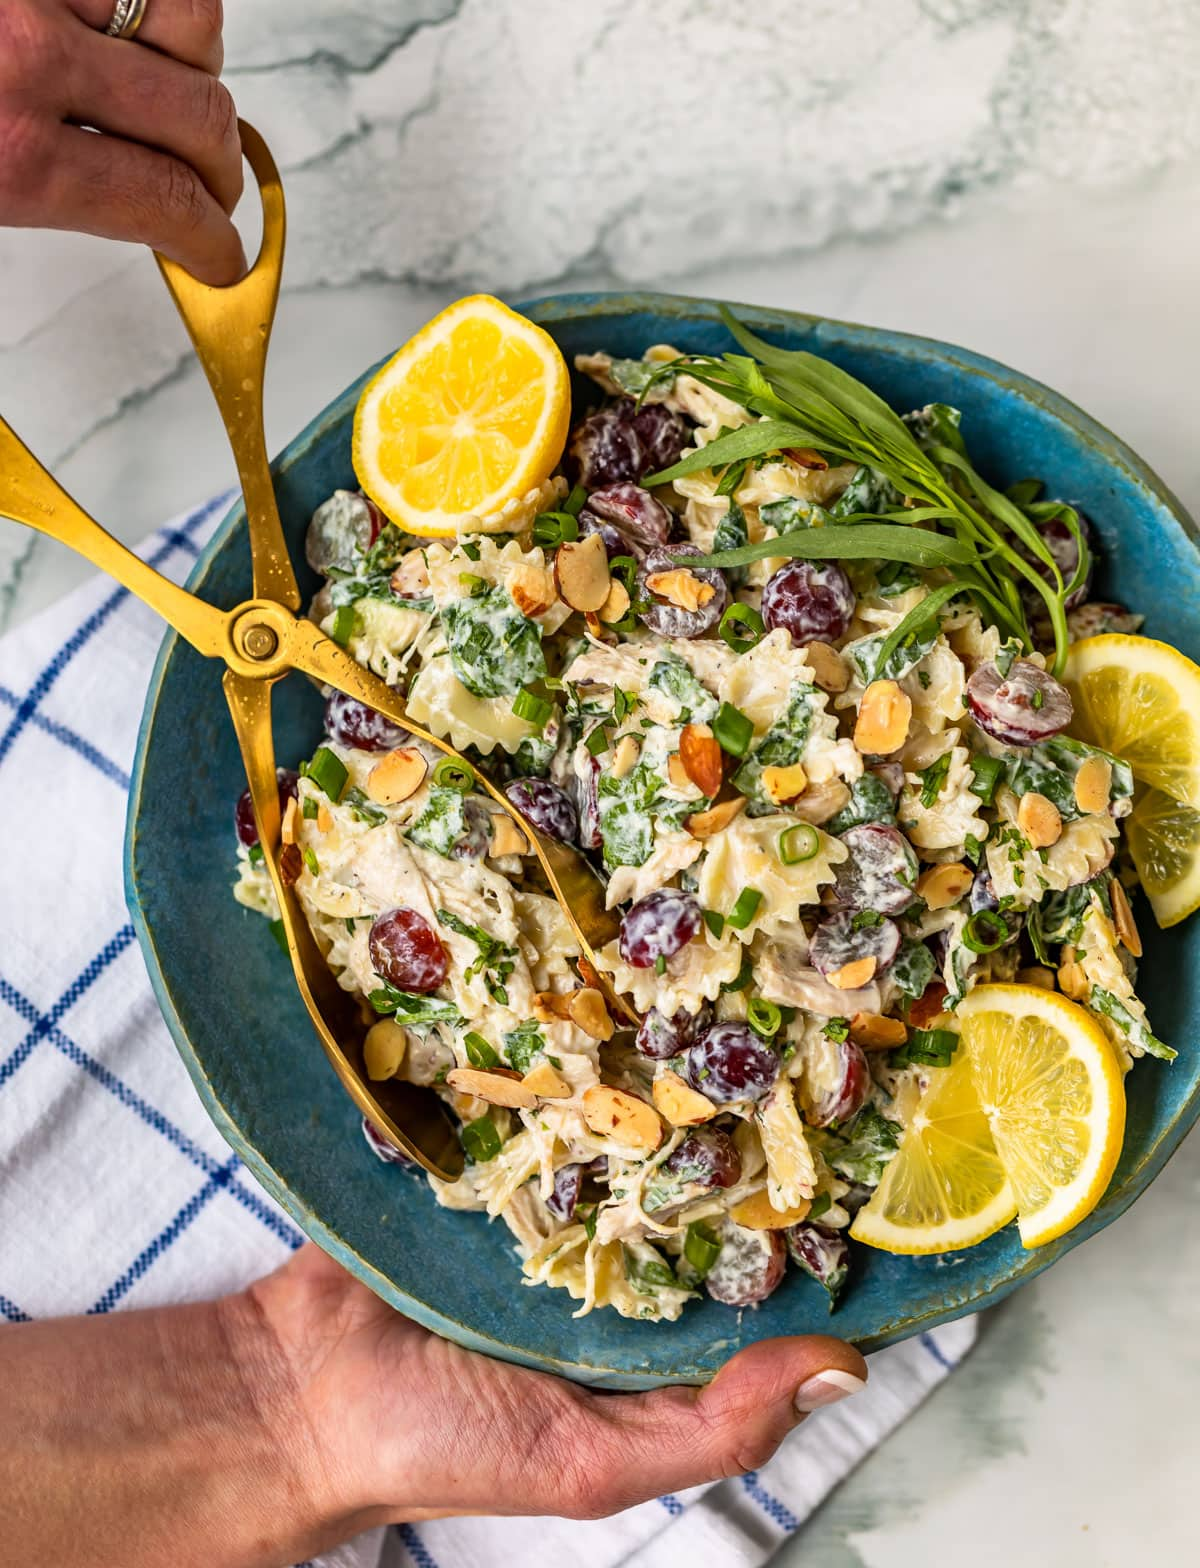 Lemon Chicken Pasta Salad from The Well Plated Cookbook